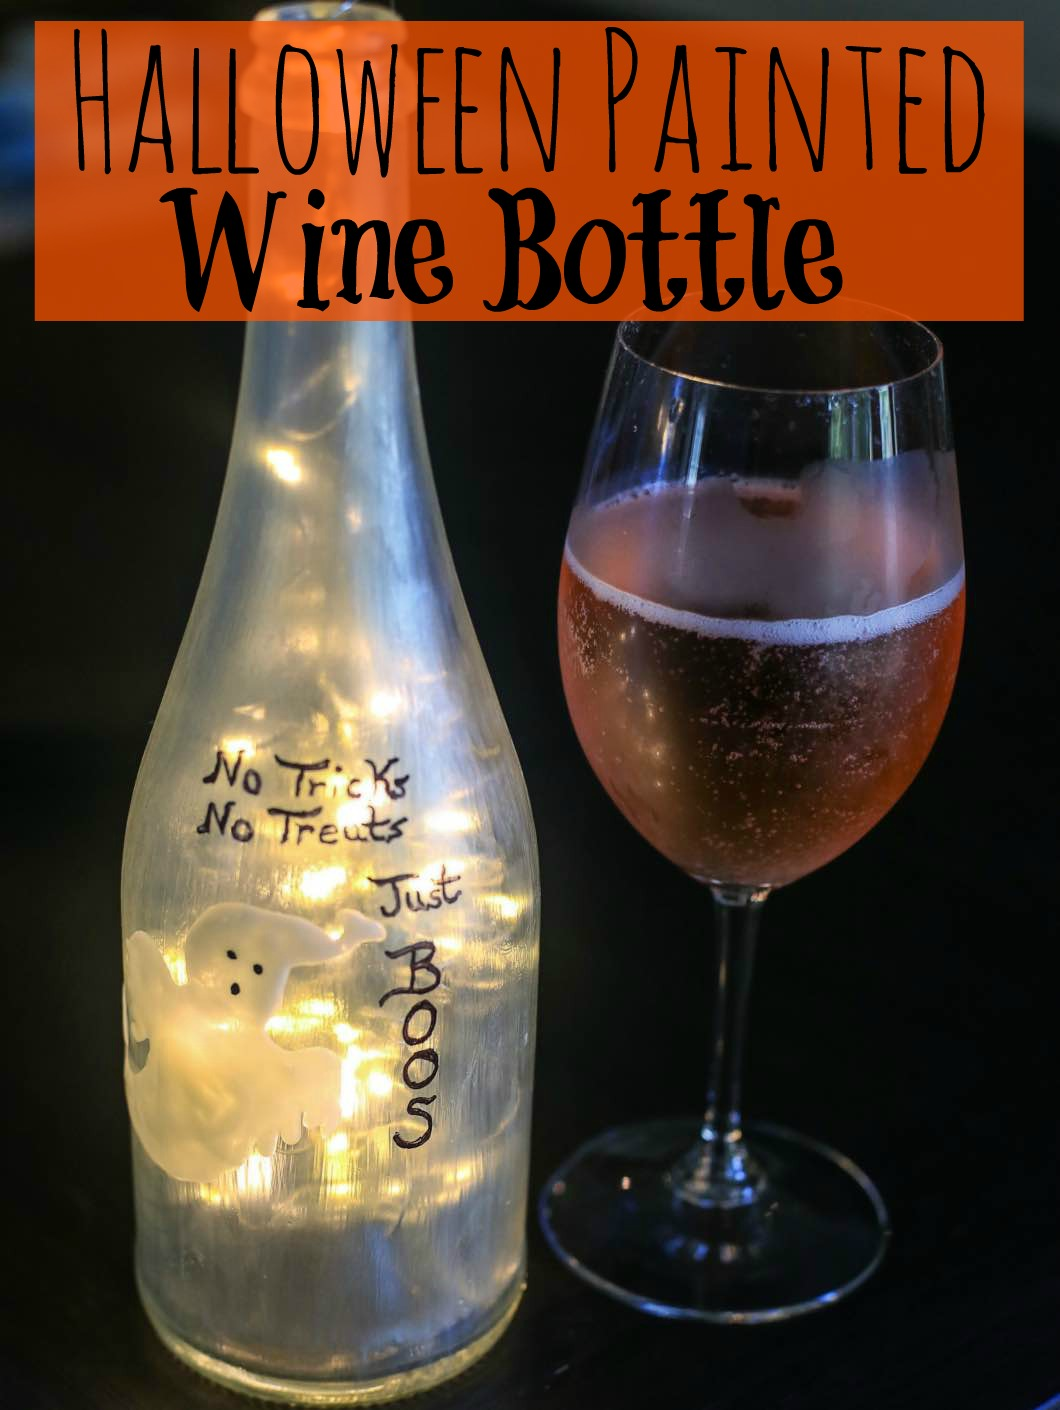 Halloween Painted Wine Bottle DIY Glass Paint